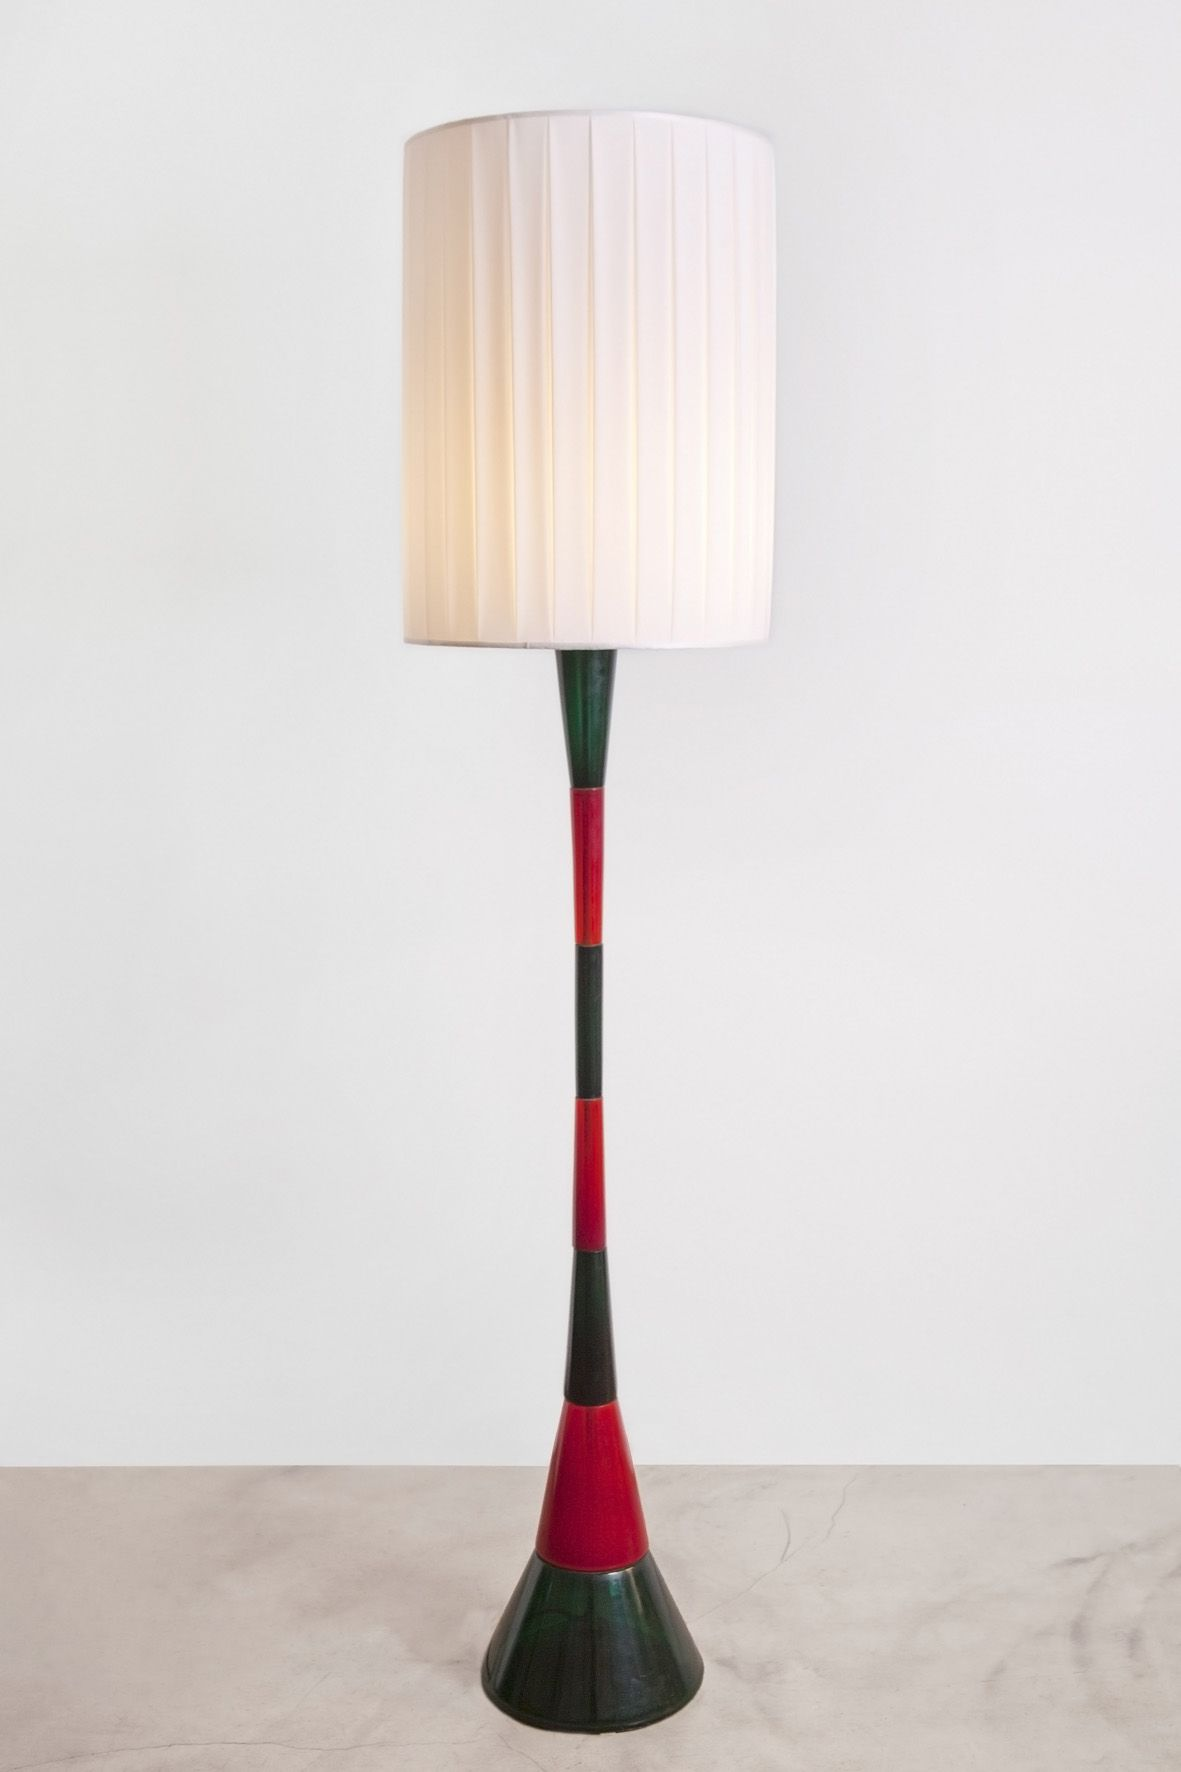 Fulvio bianconi colored glass floor lamp for venini c1955 low fulvio bianconi colored glass floor lamp for venini c1955 mozeypictures Gallery